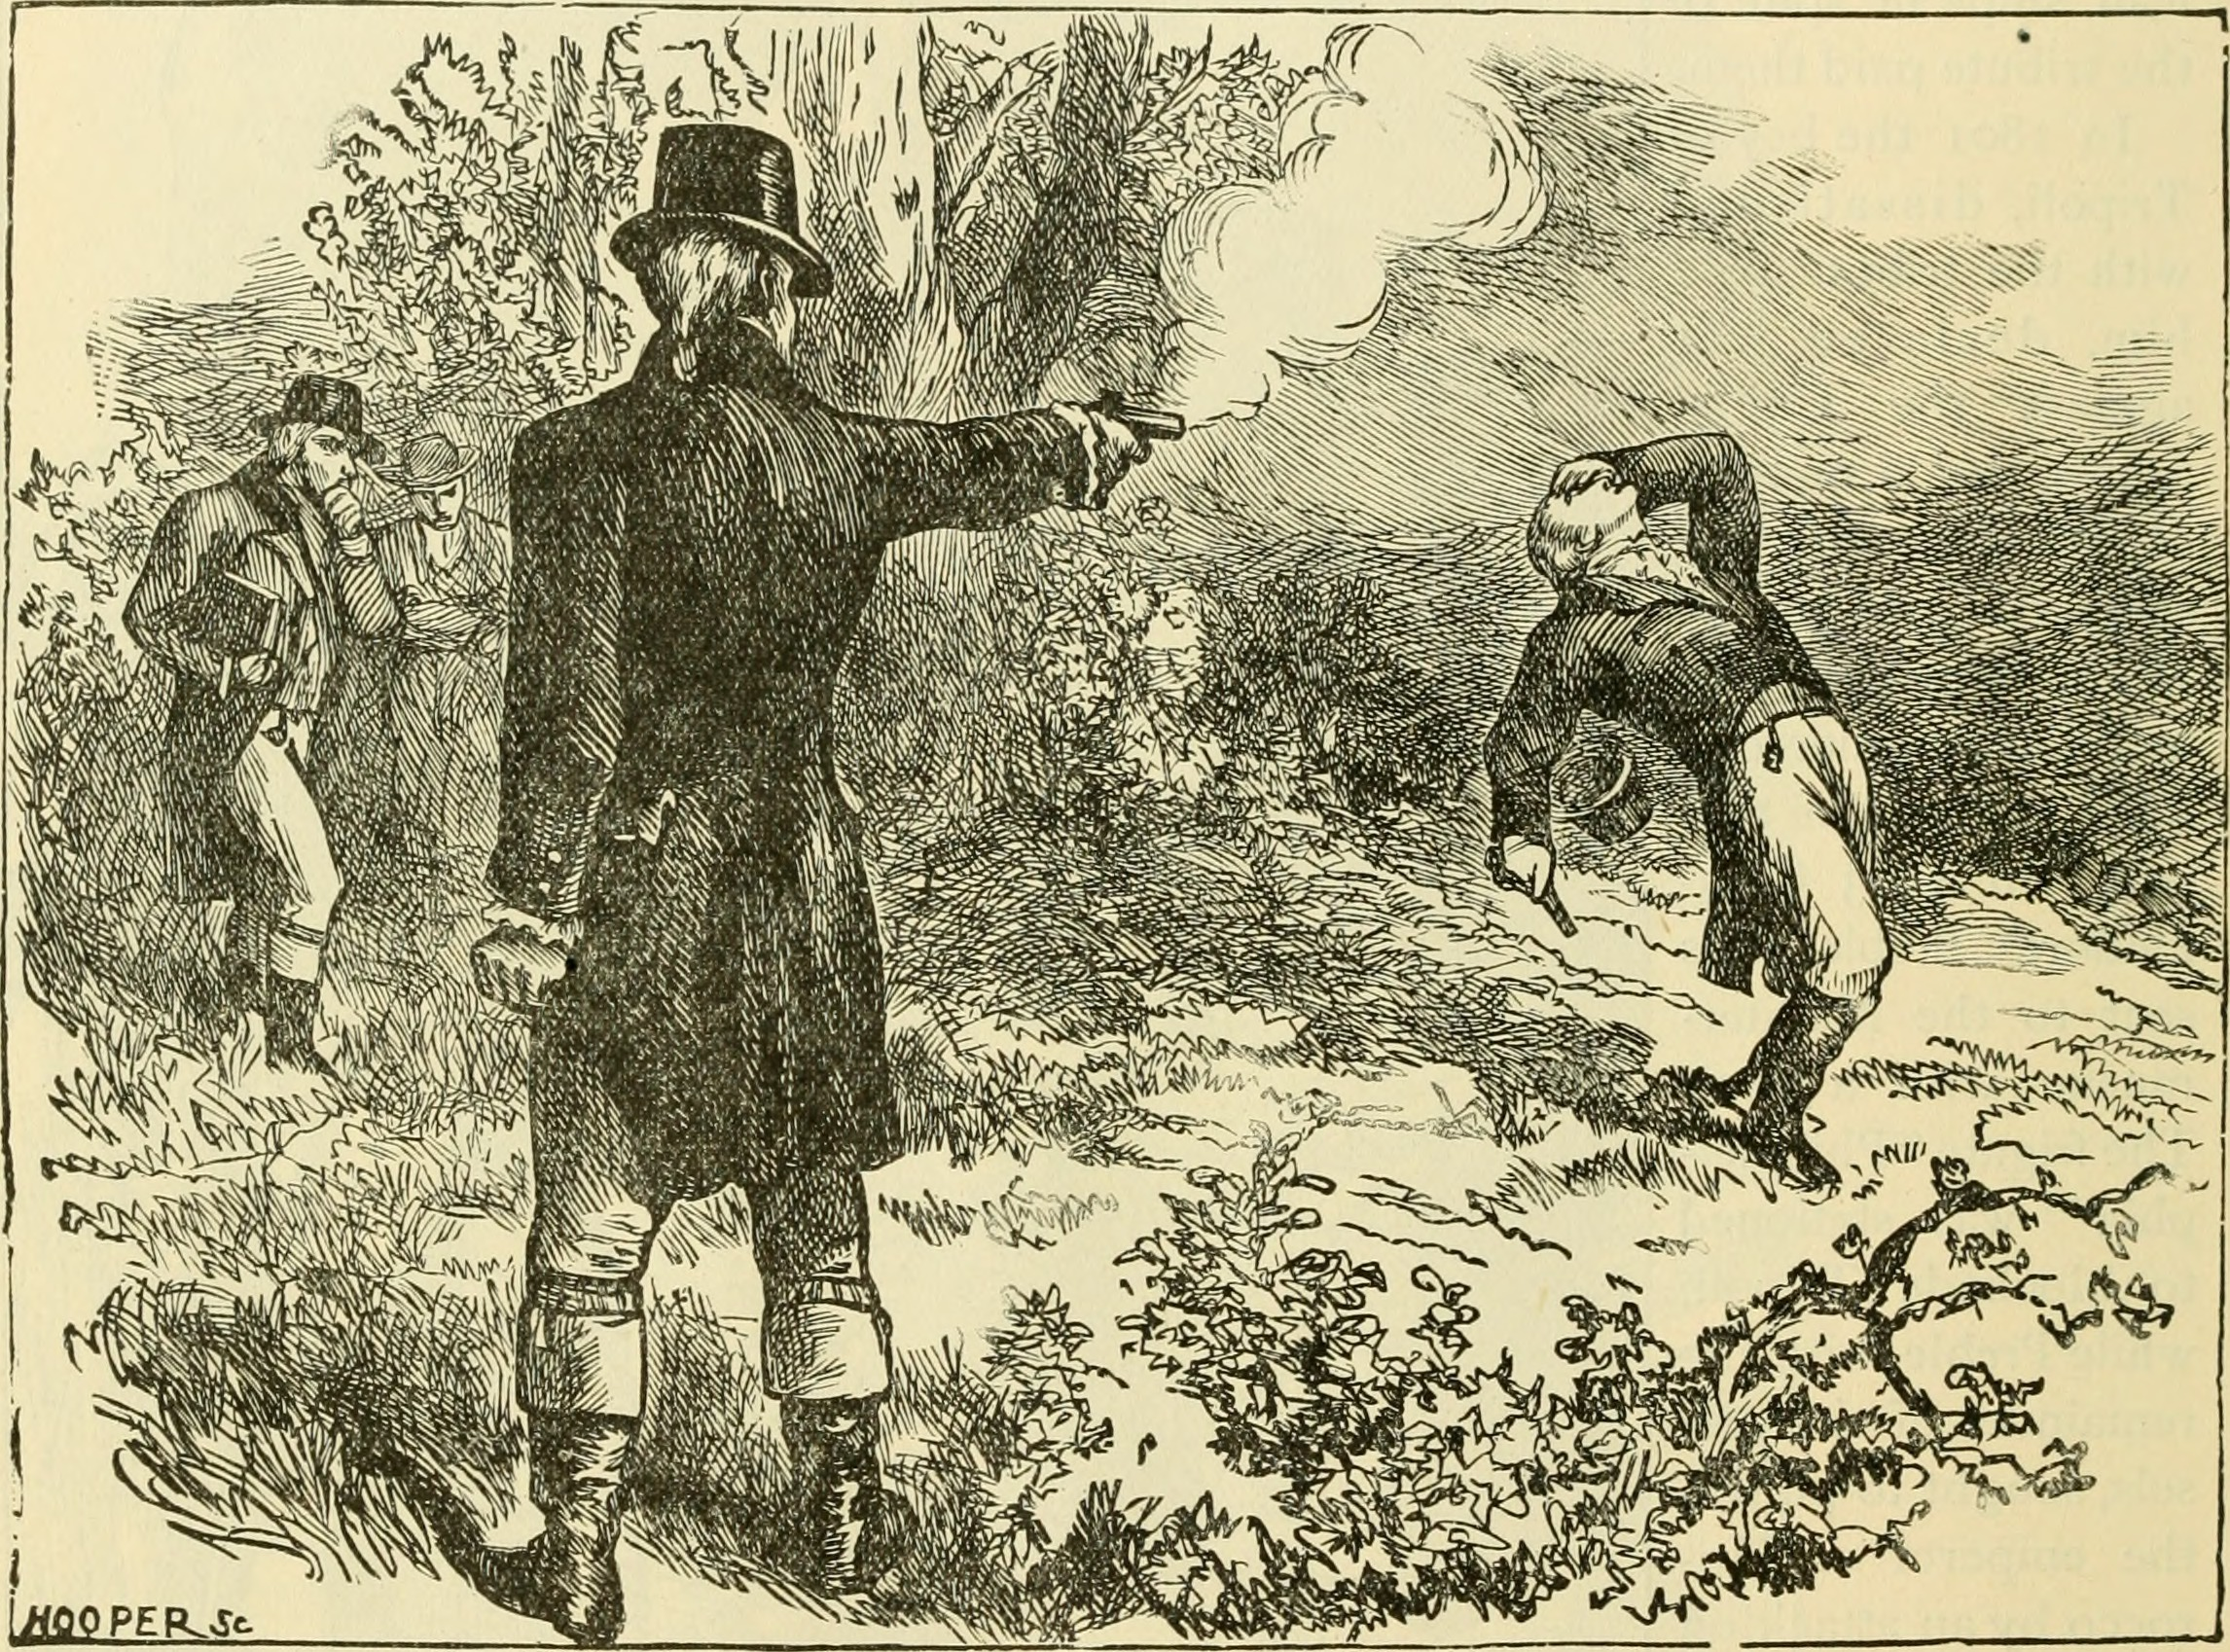 circuitpython_Duel_between_Aaron_Burr_and_Alexander_Hamilton.jpg